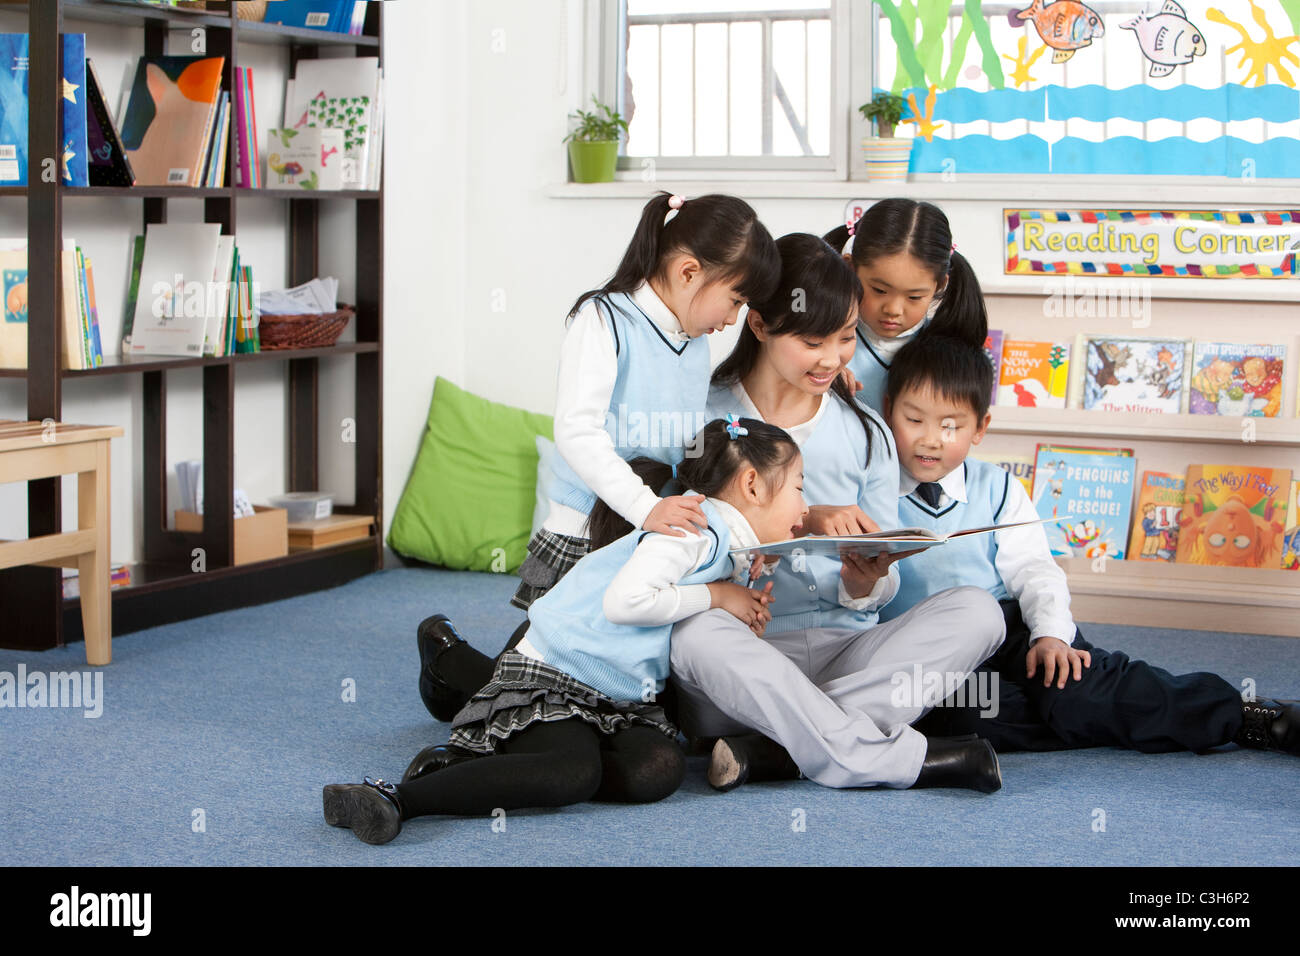 A teacher reading aloud to a classroom of students - Stock Image